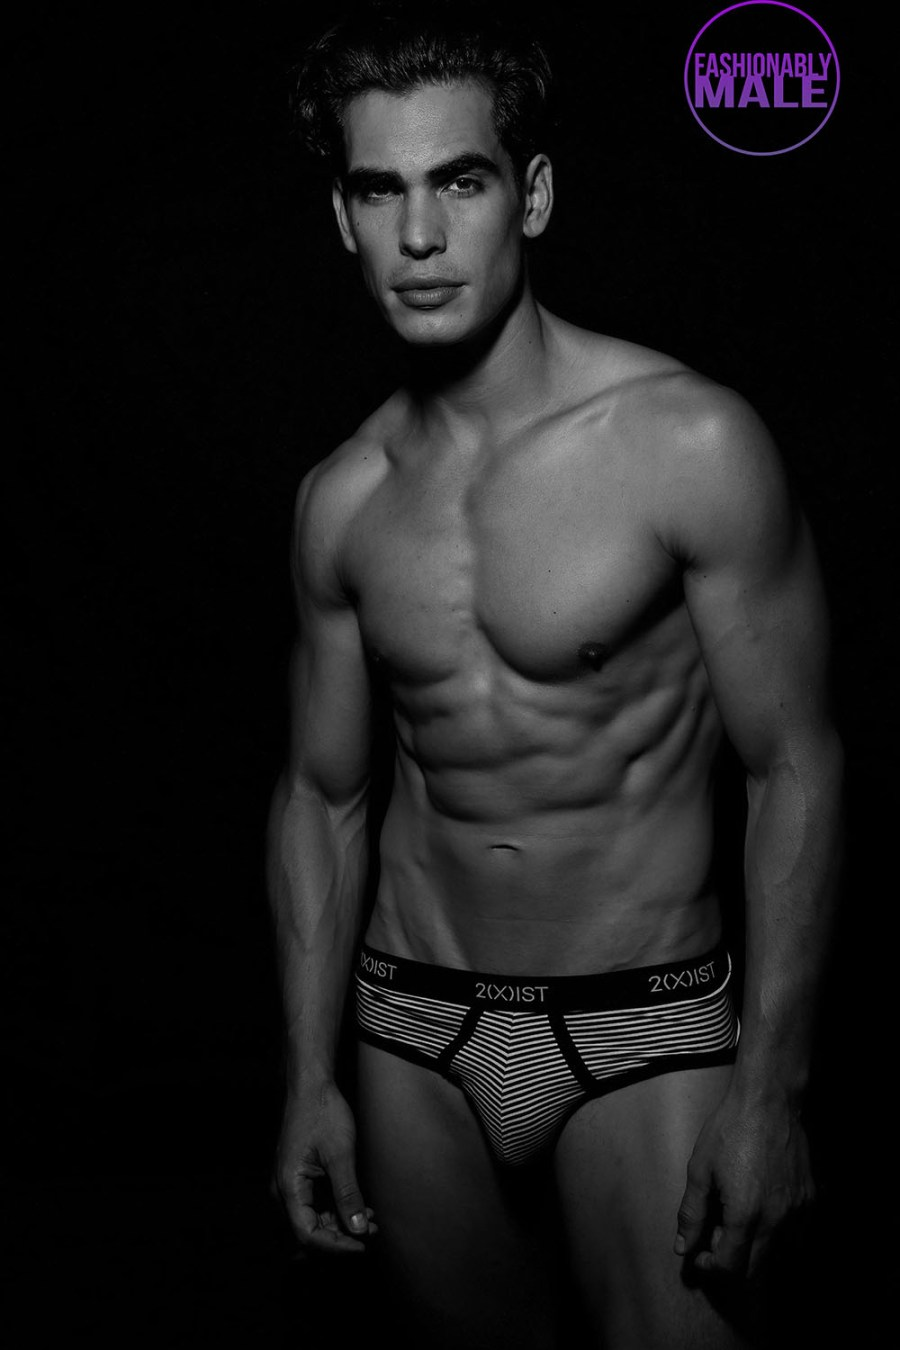 Felipe Villagrana by Afif Kattan for Fashionably Male4